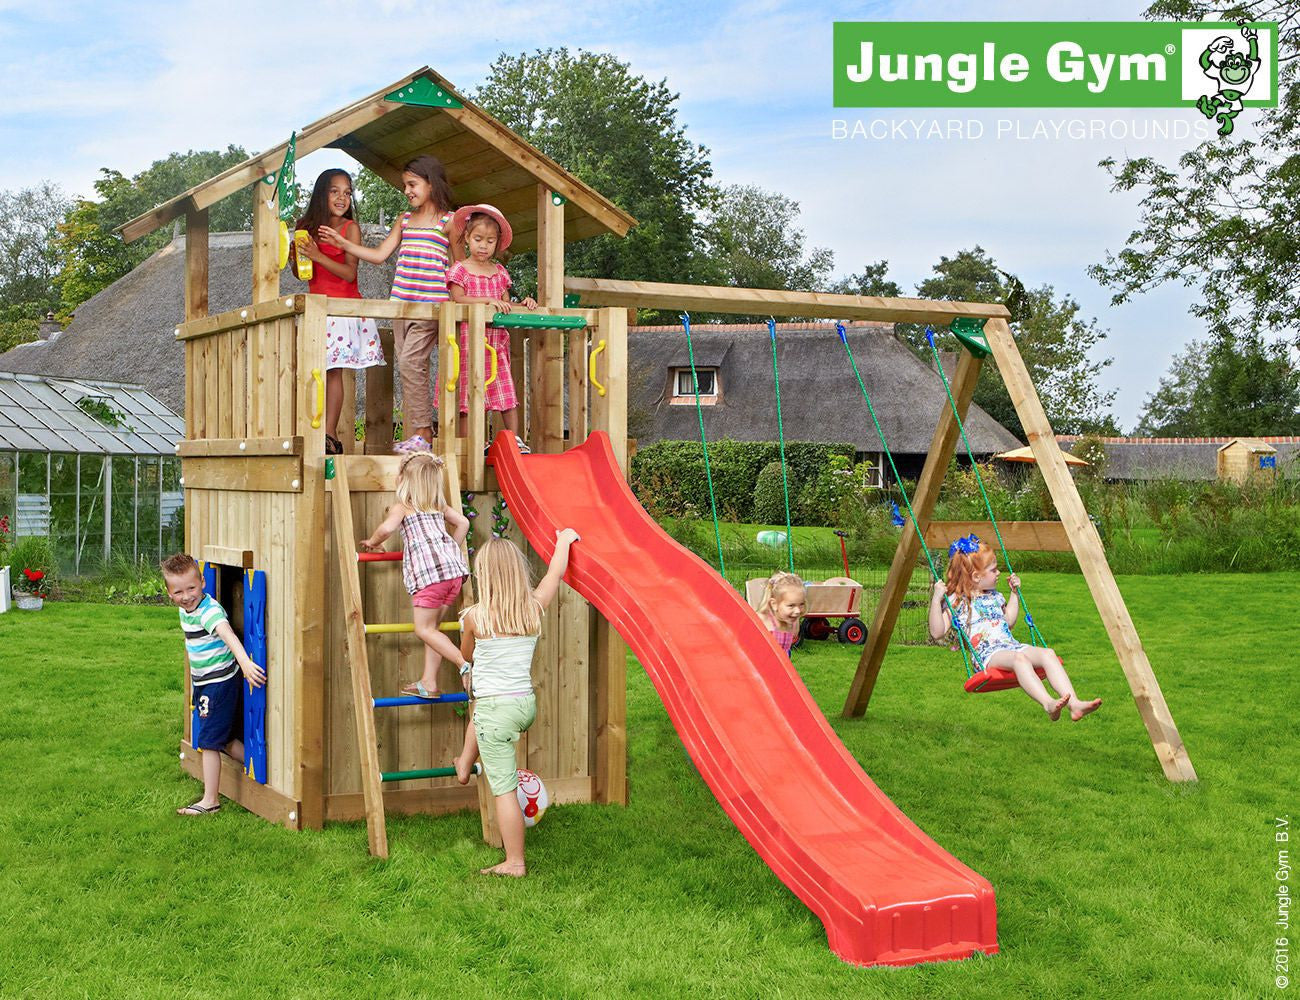 jungle gym chalet climbing frame with swing arm slide swing seats an garden toy store. Black Bedroom Furniture Sets. Home Design Ideas